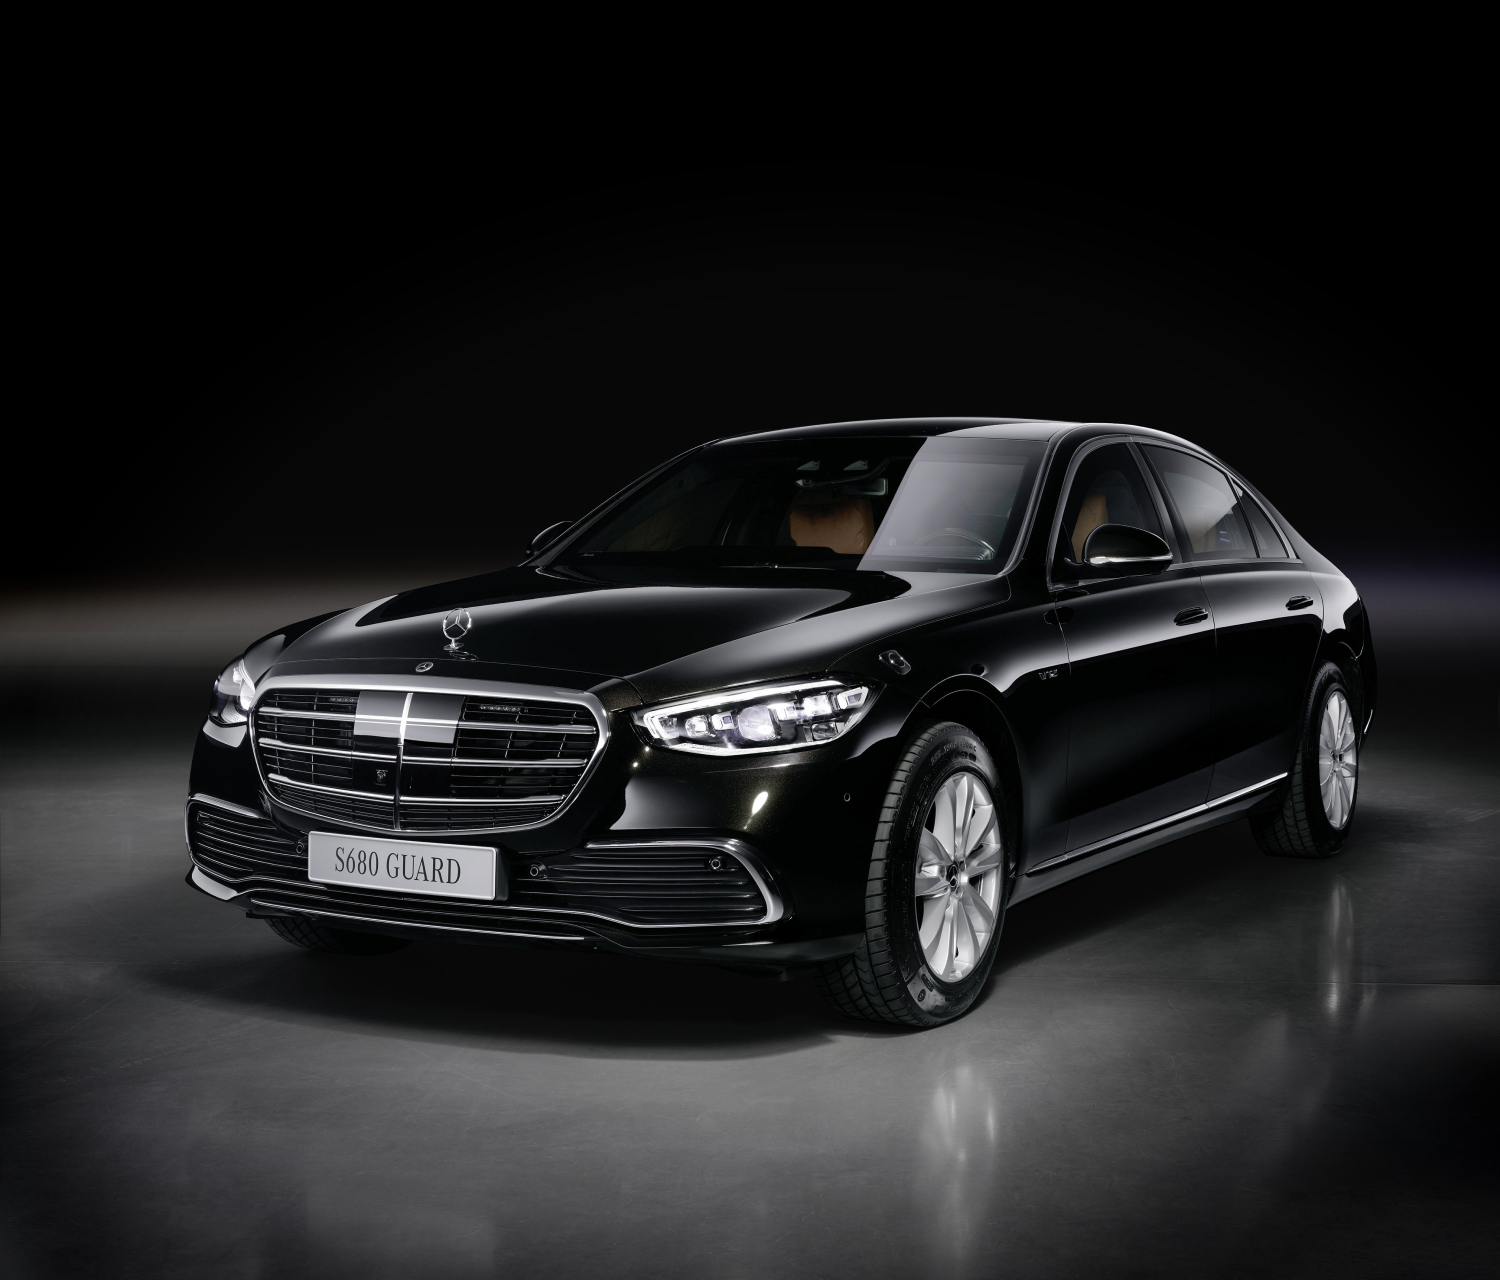 The new 2022 Mercedes S 680 GUARD is an armored S-Class